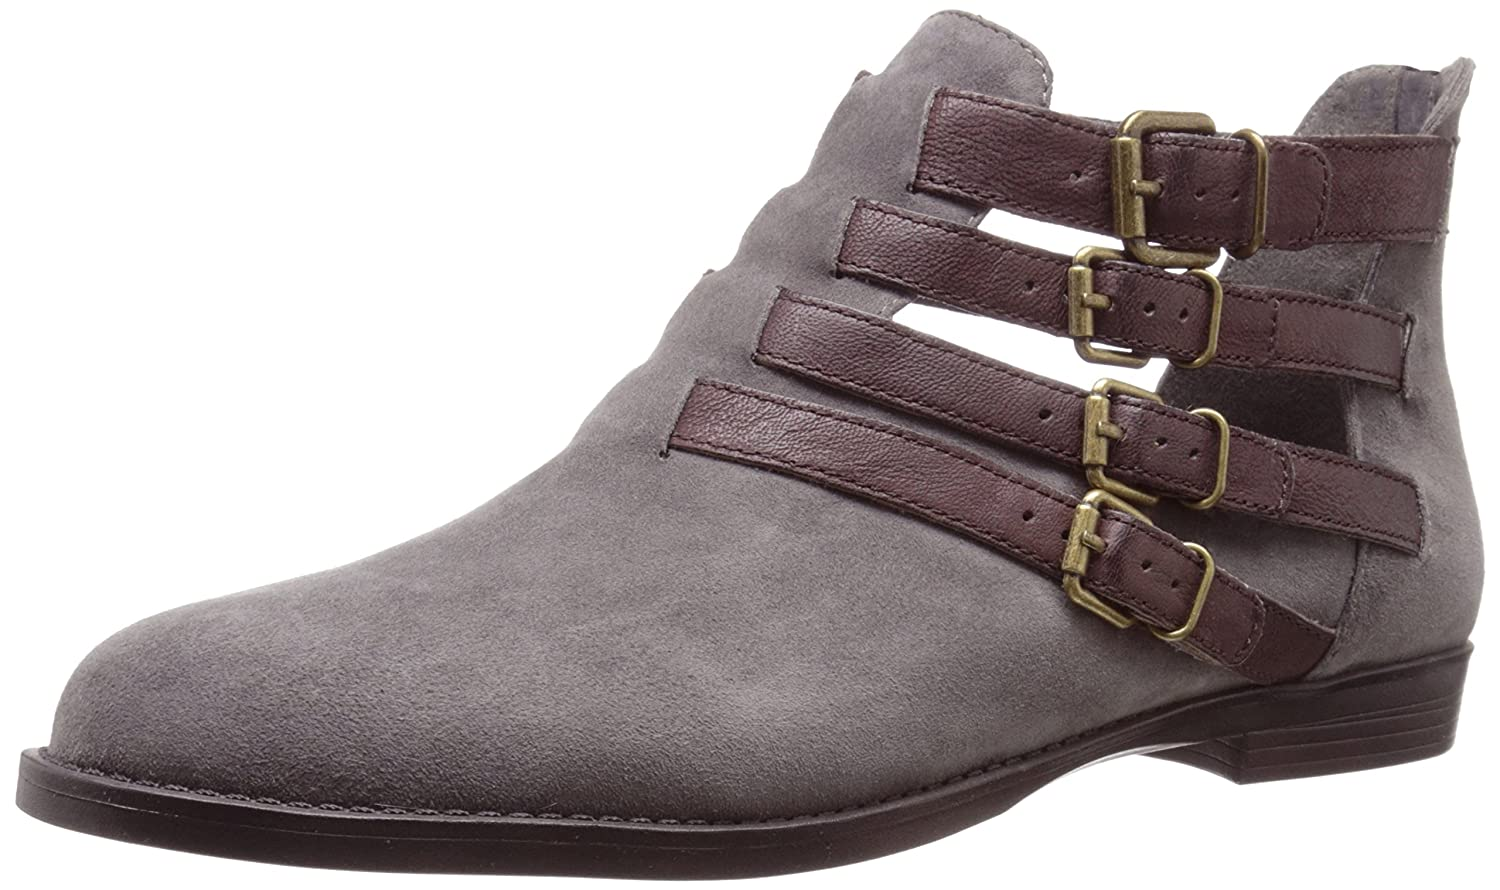 Bella Vita Women's Ronan Boot B00ZIE03EG 11 N US|Grey Suede/Chestnut